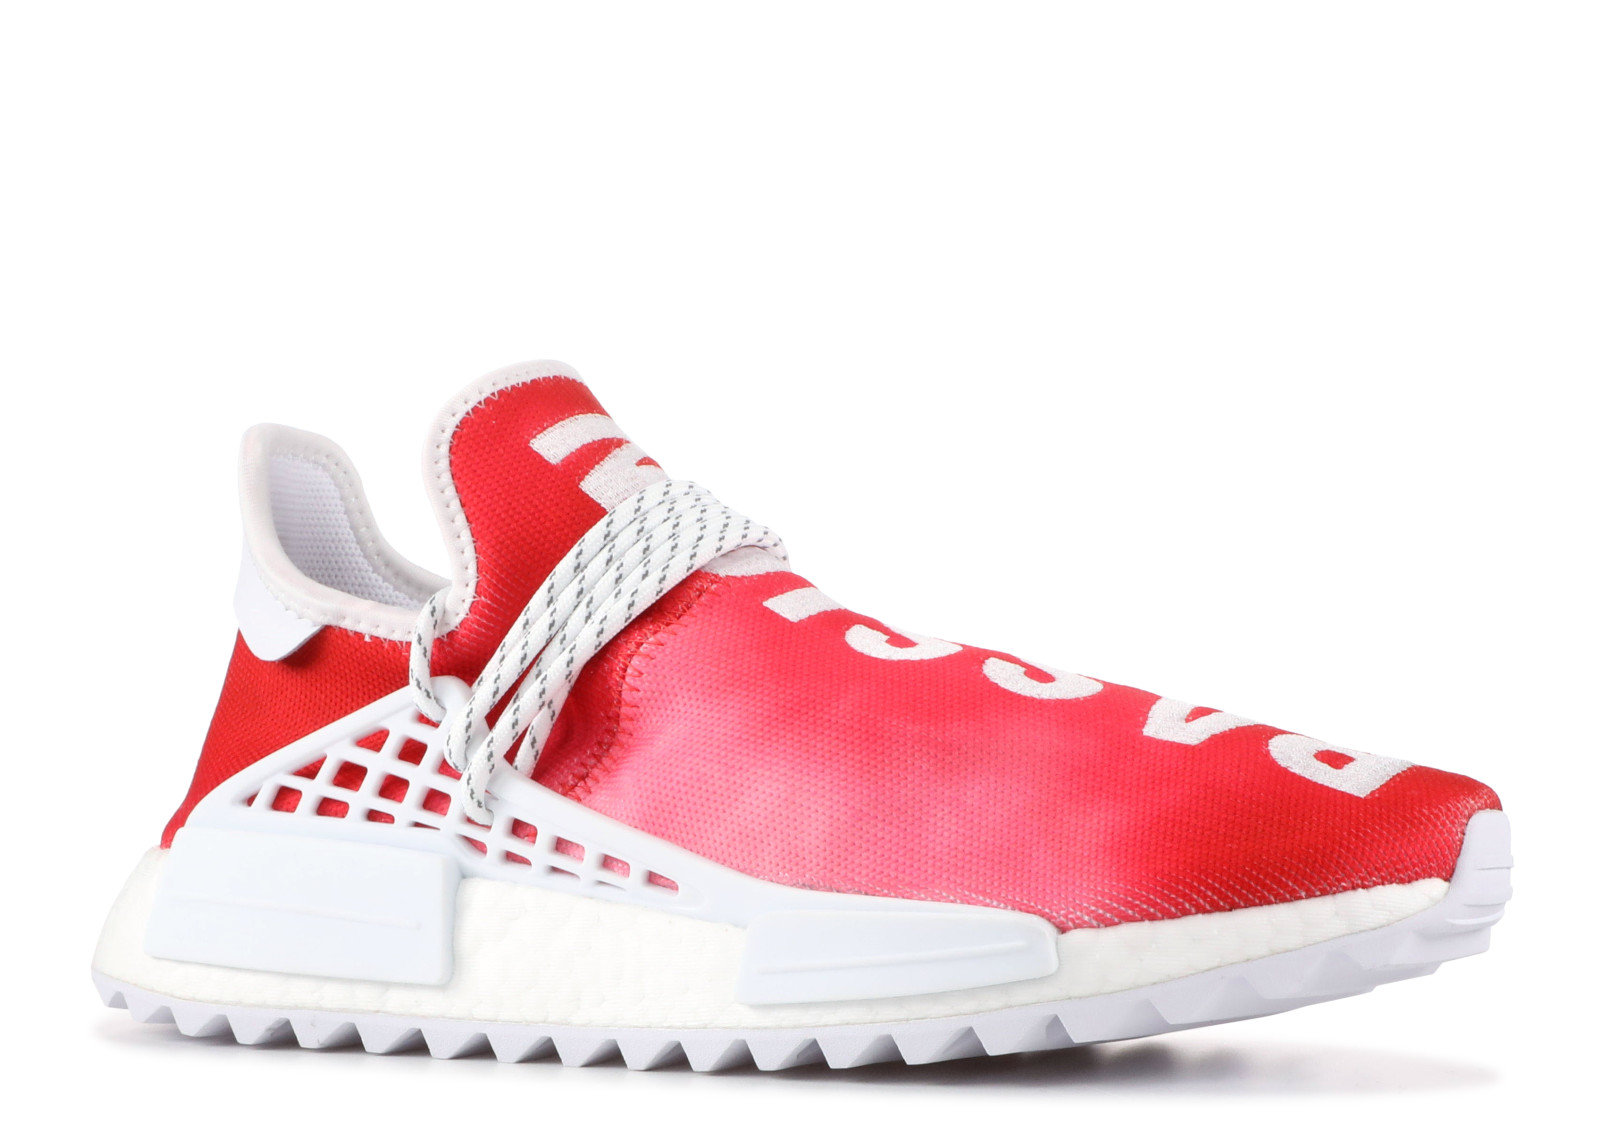 2e6b4a191a179 Adidas PW Human Race Trail China Exclusive Red Passion